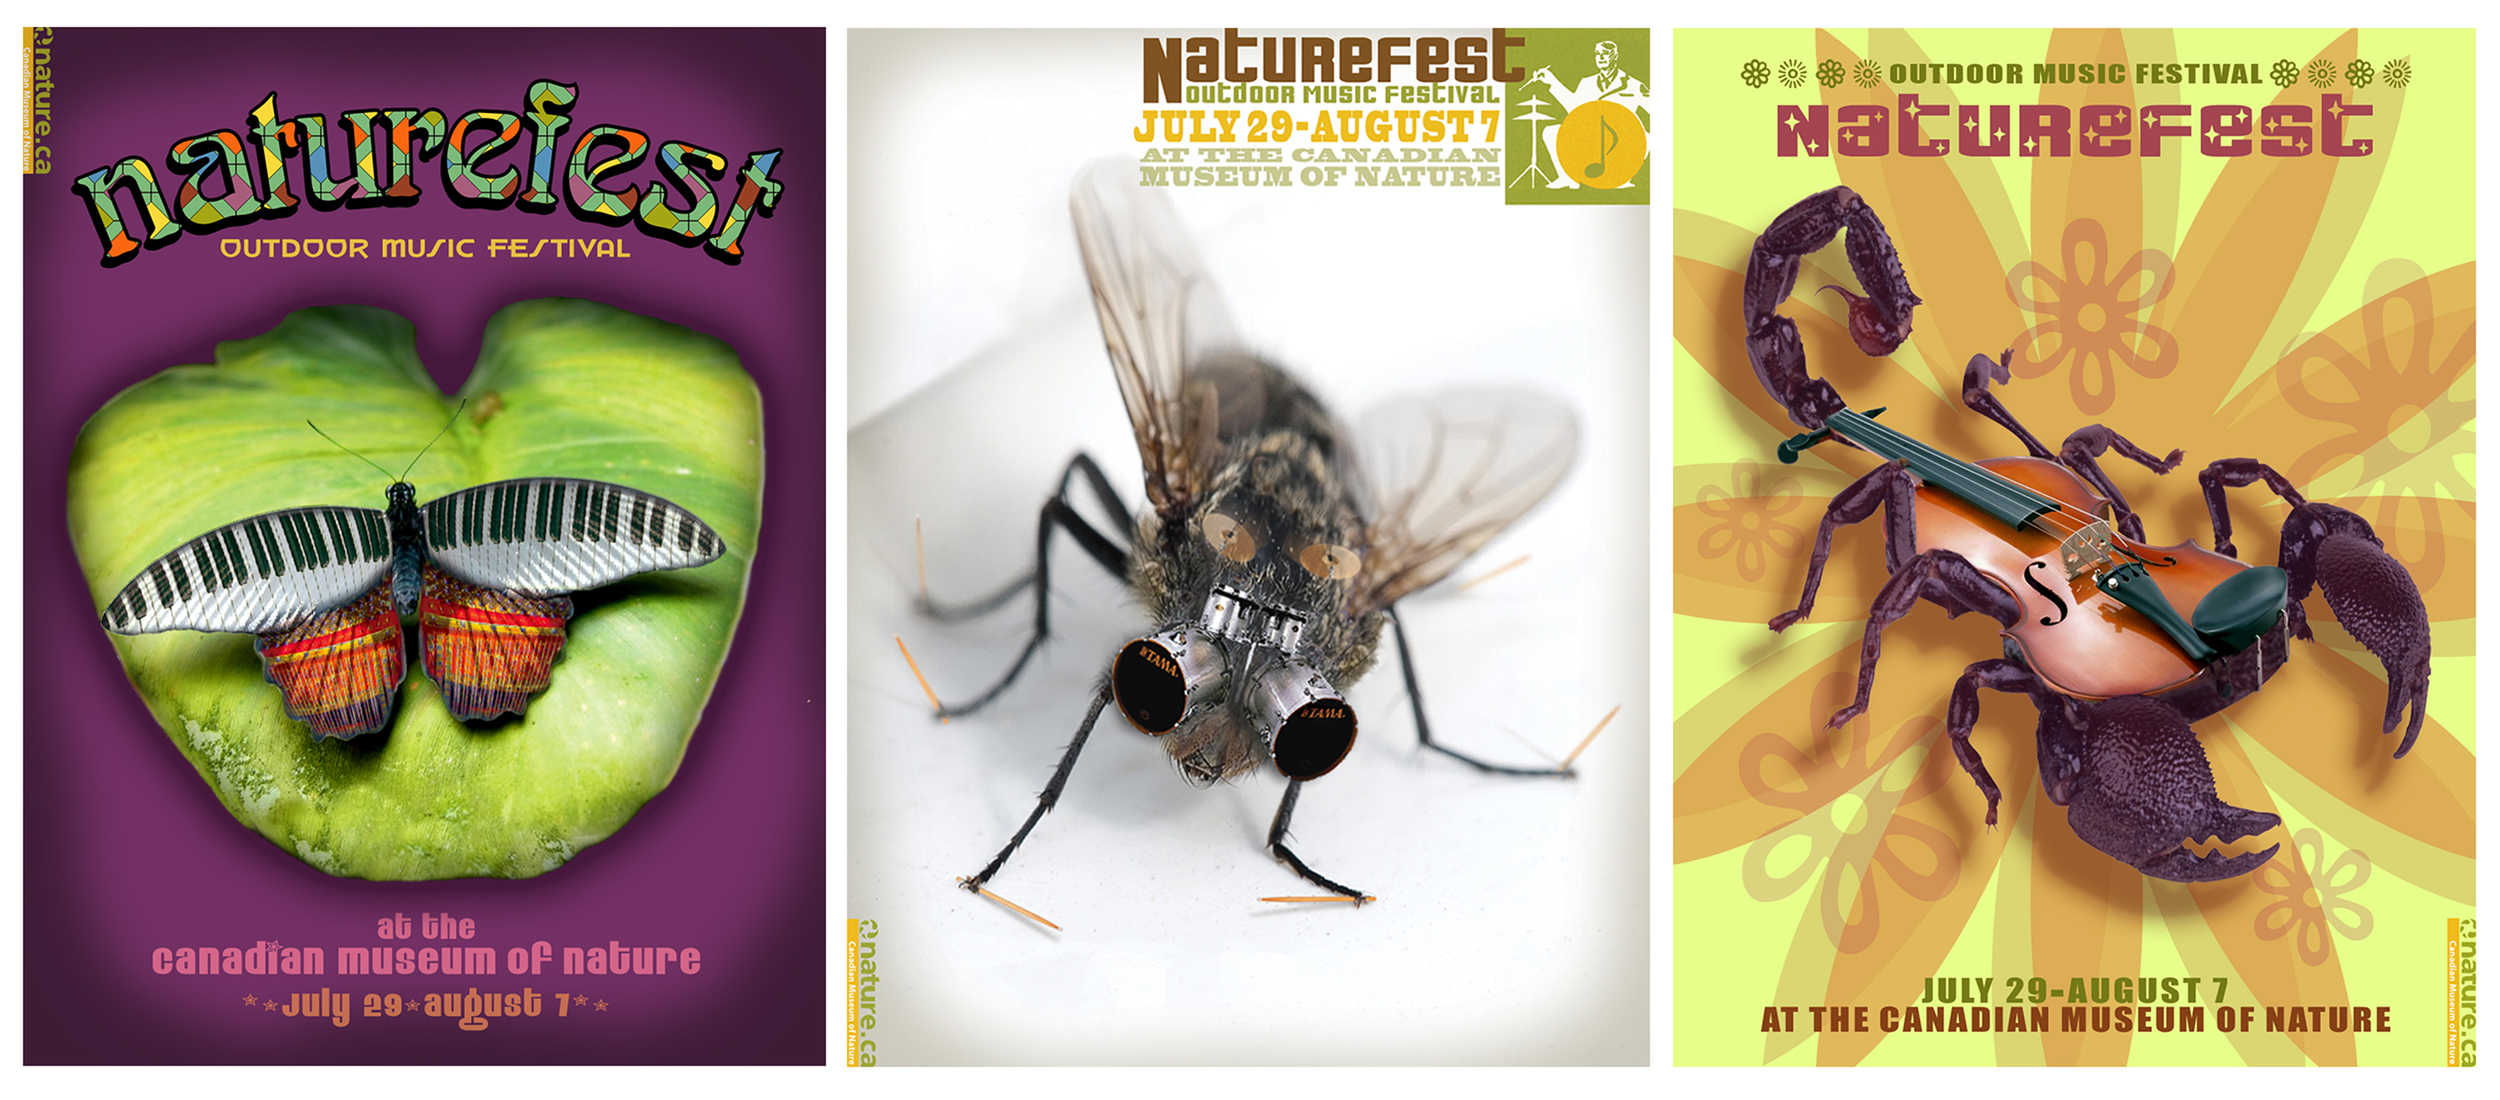 Series of concert posters promoting outdoor summer music festival at the Canadian Museum of Nature.